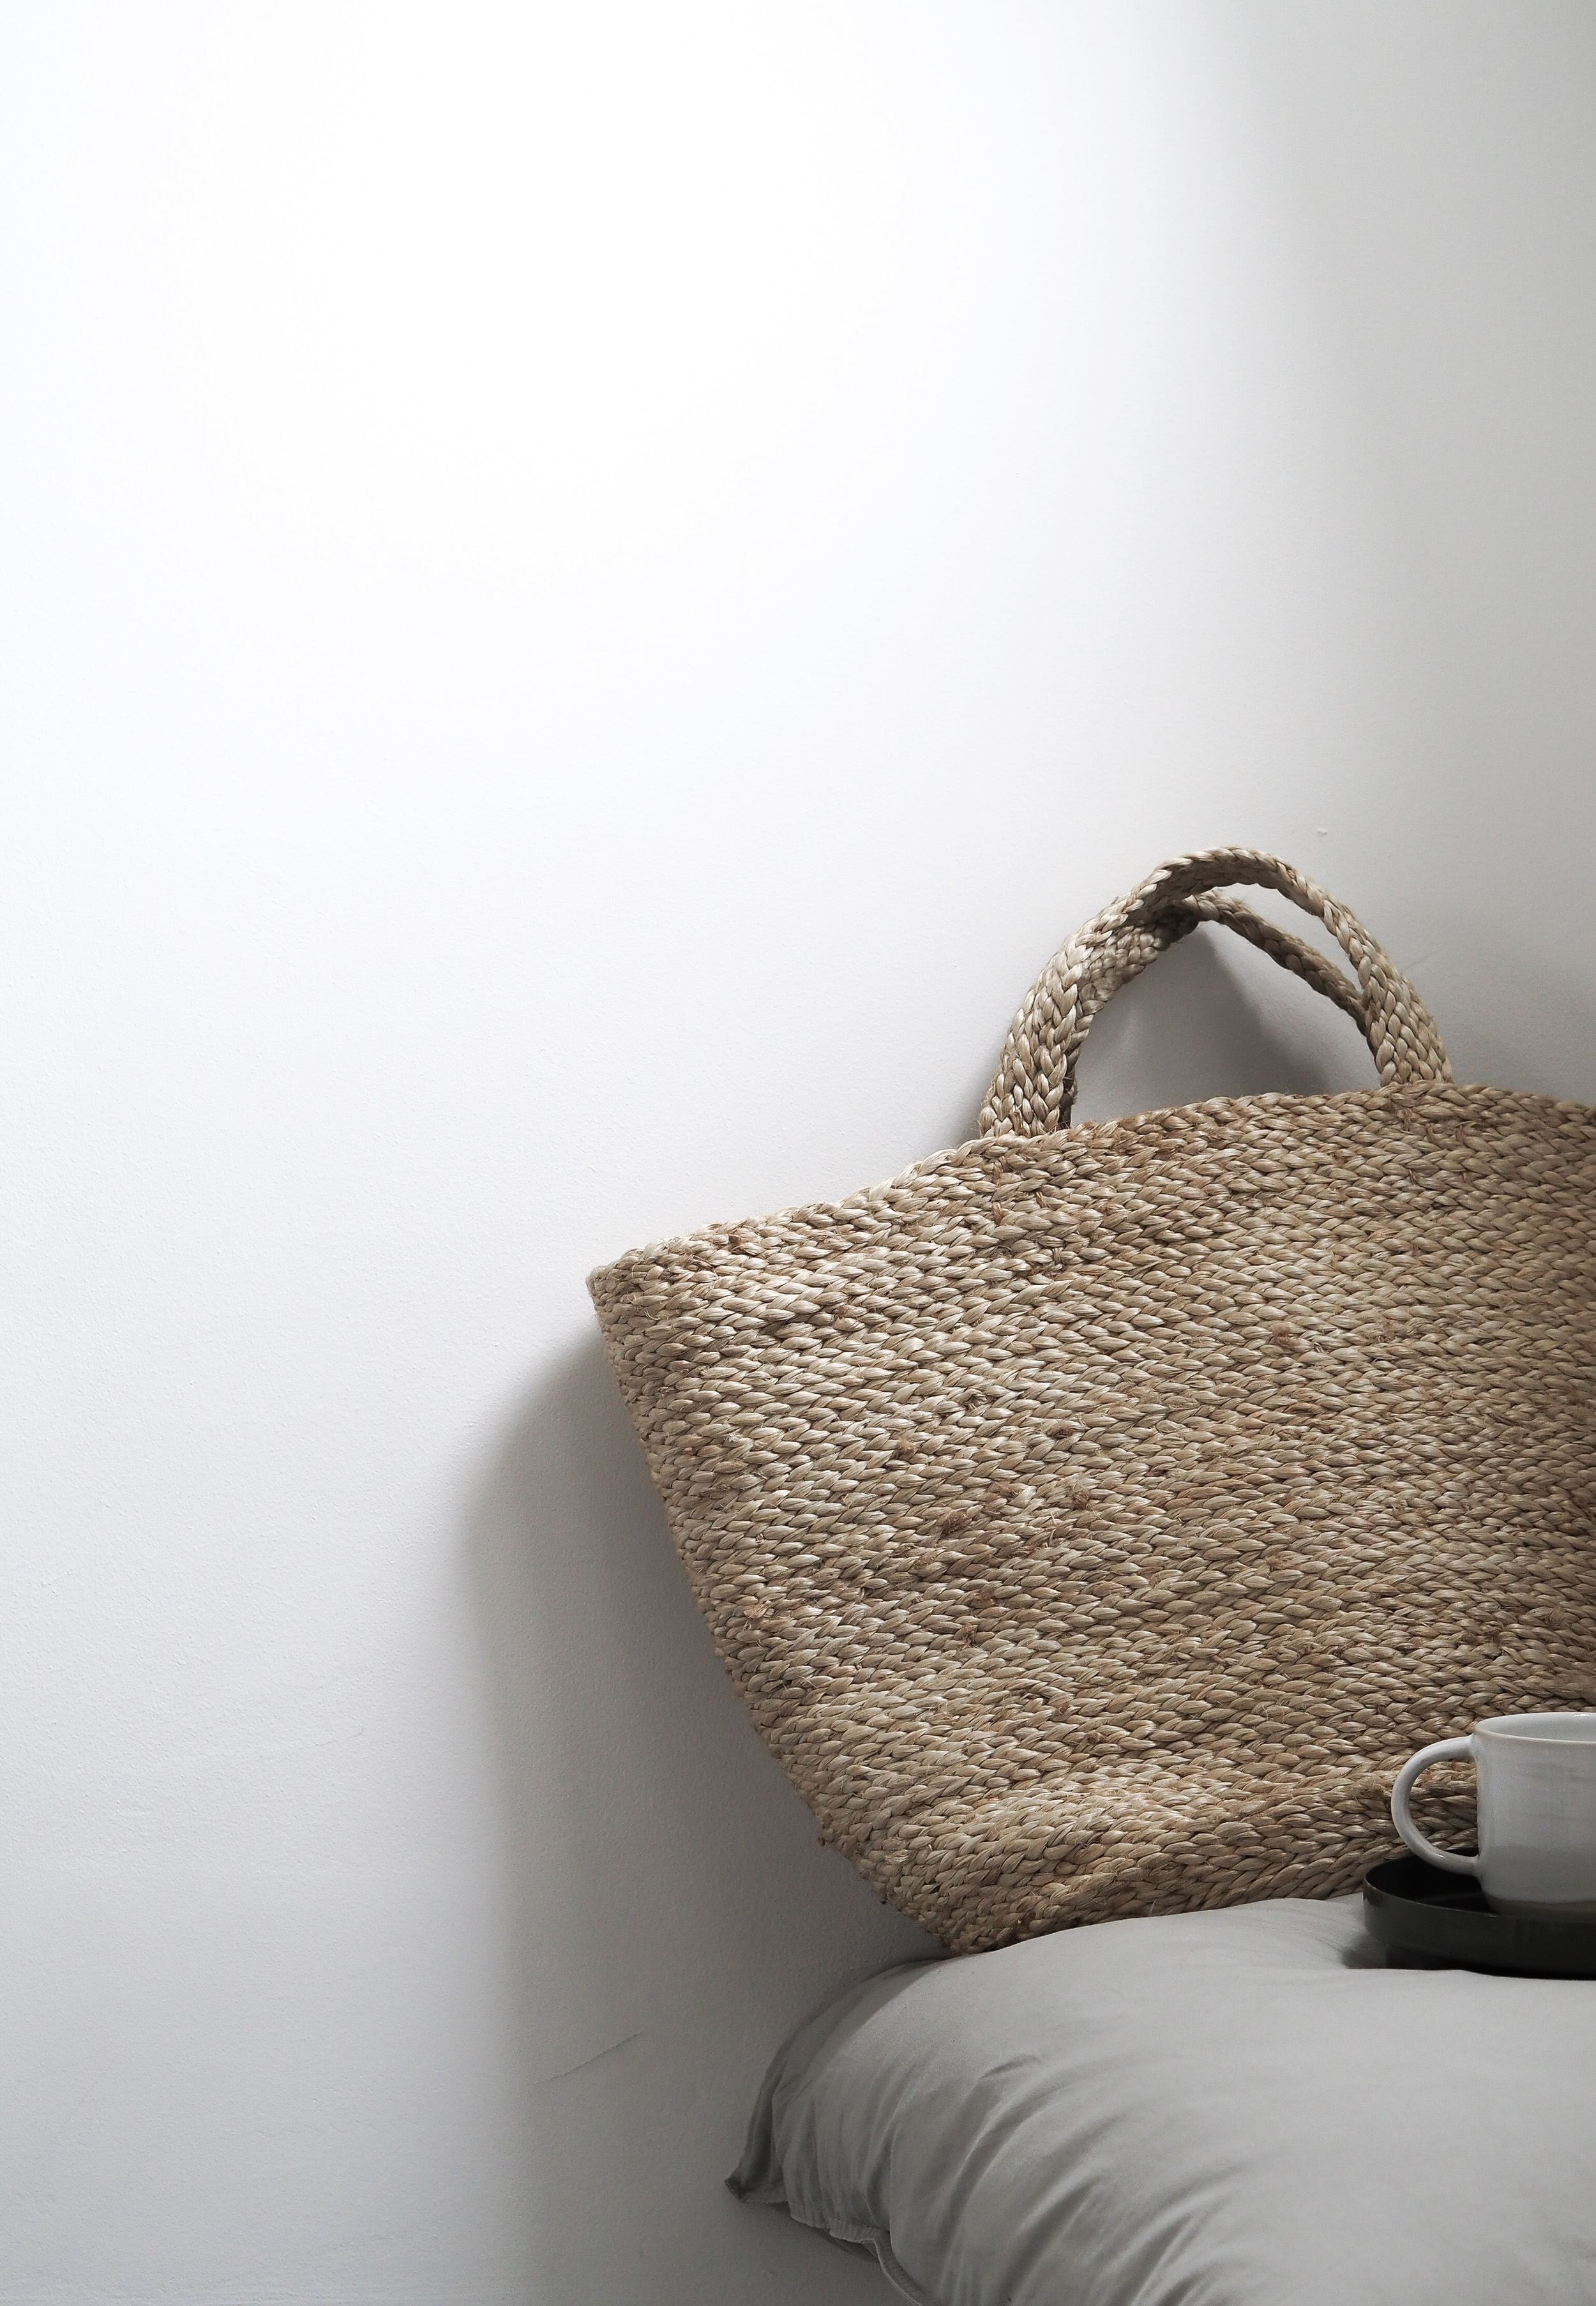 Natural woven jute basket. Simple, peaceful, minimal style. Malling Living